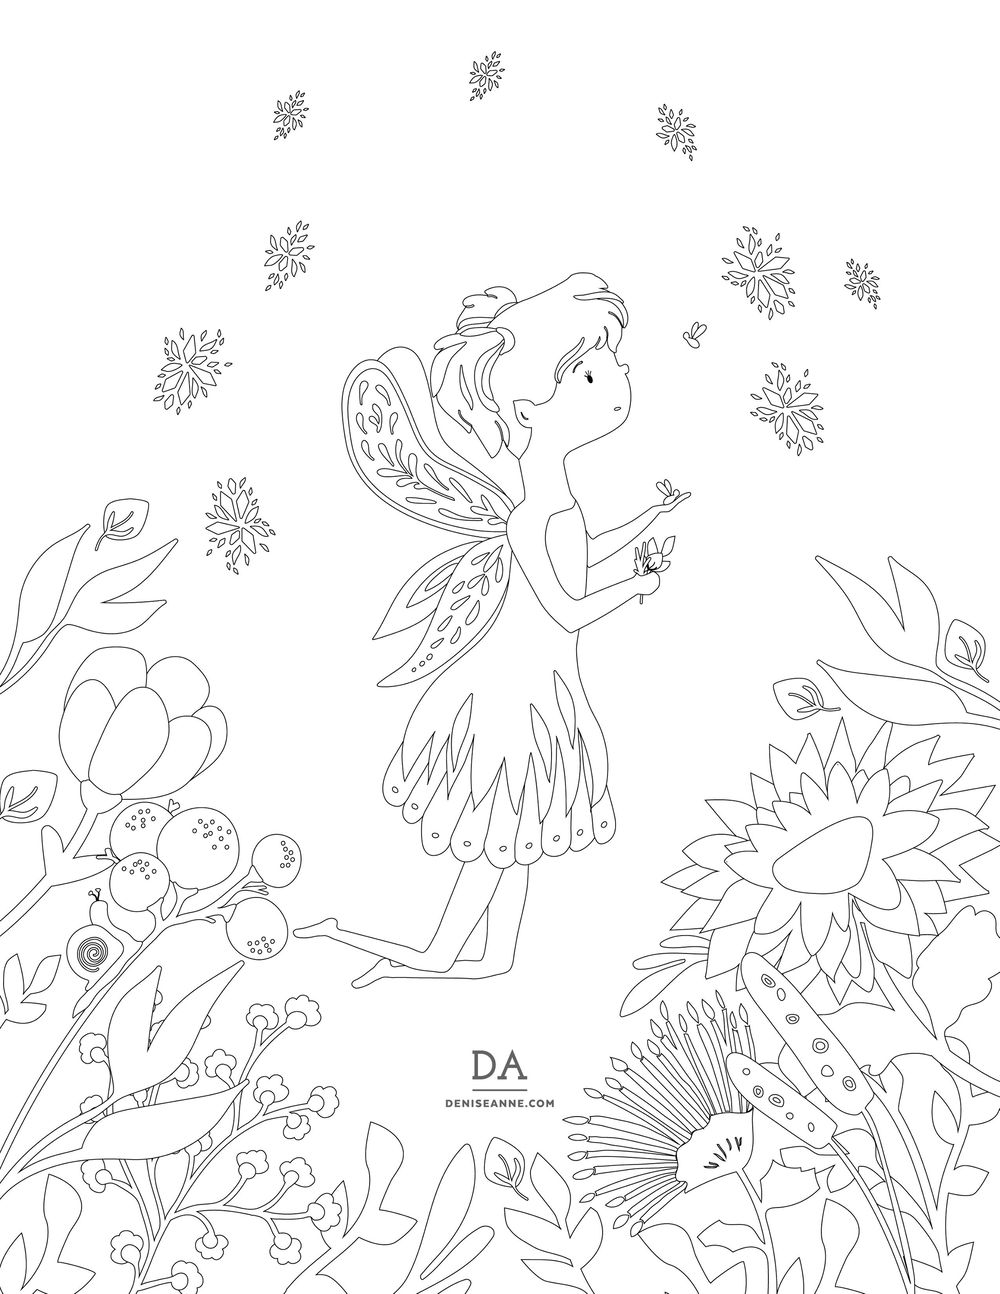 Coloring Book Page - image 1 - student project